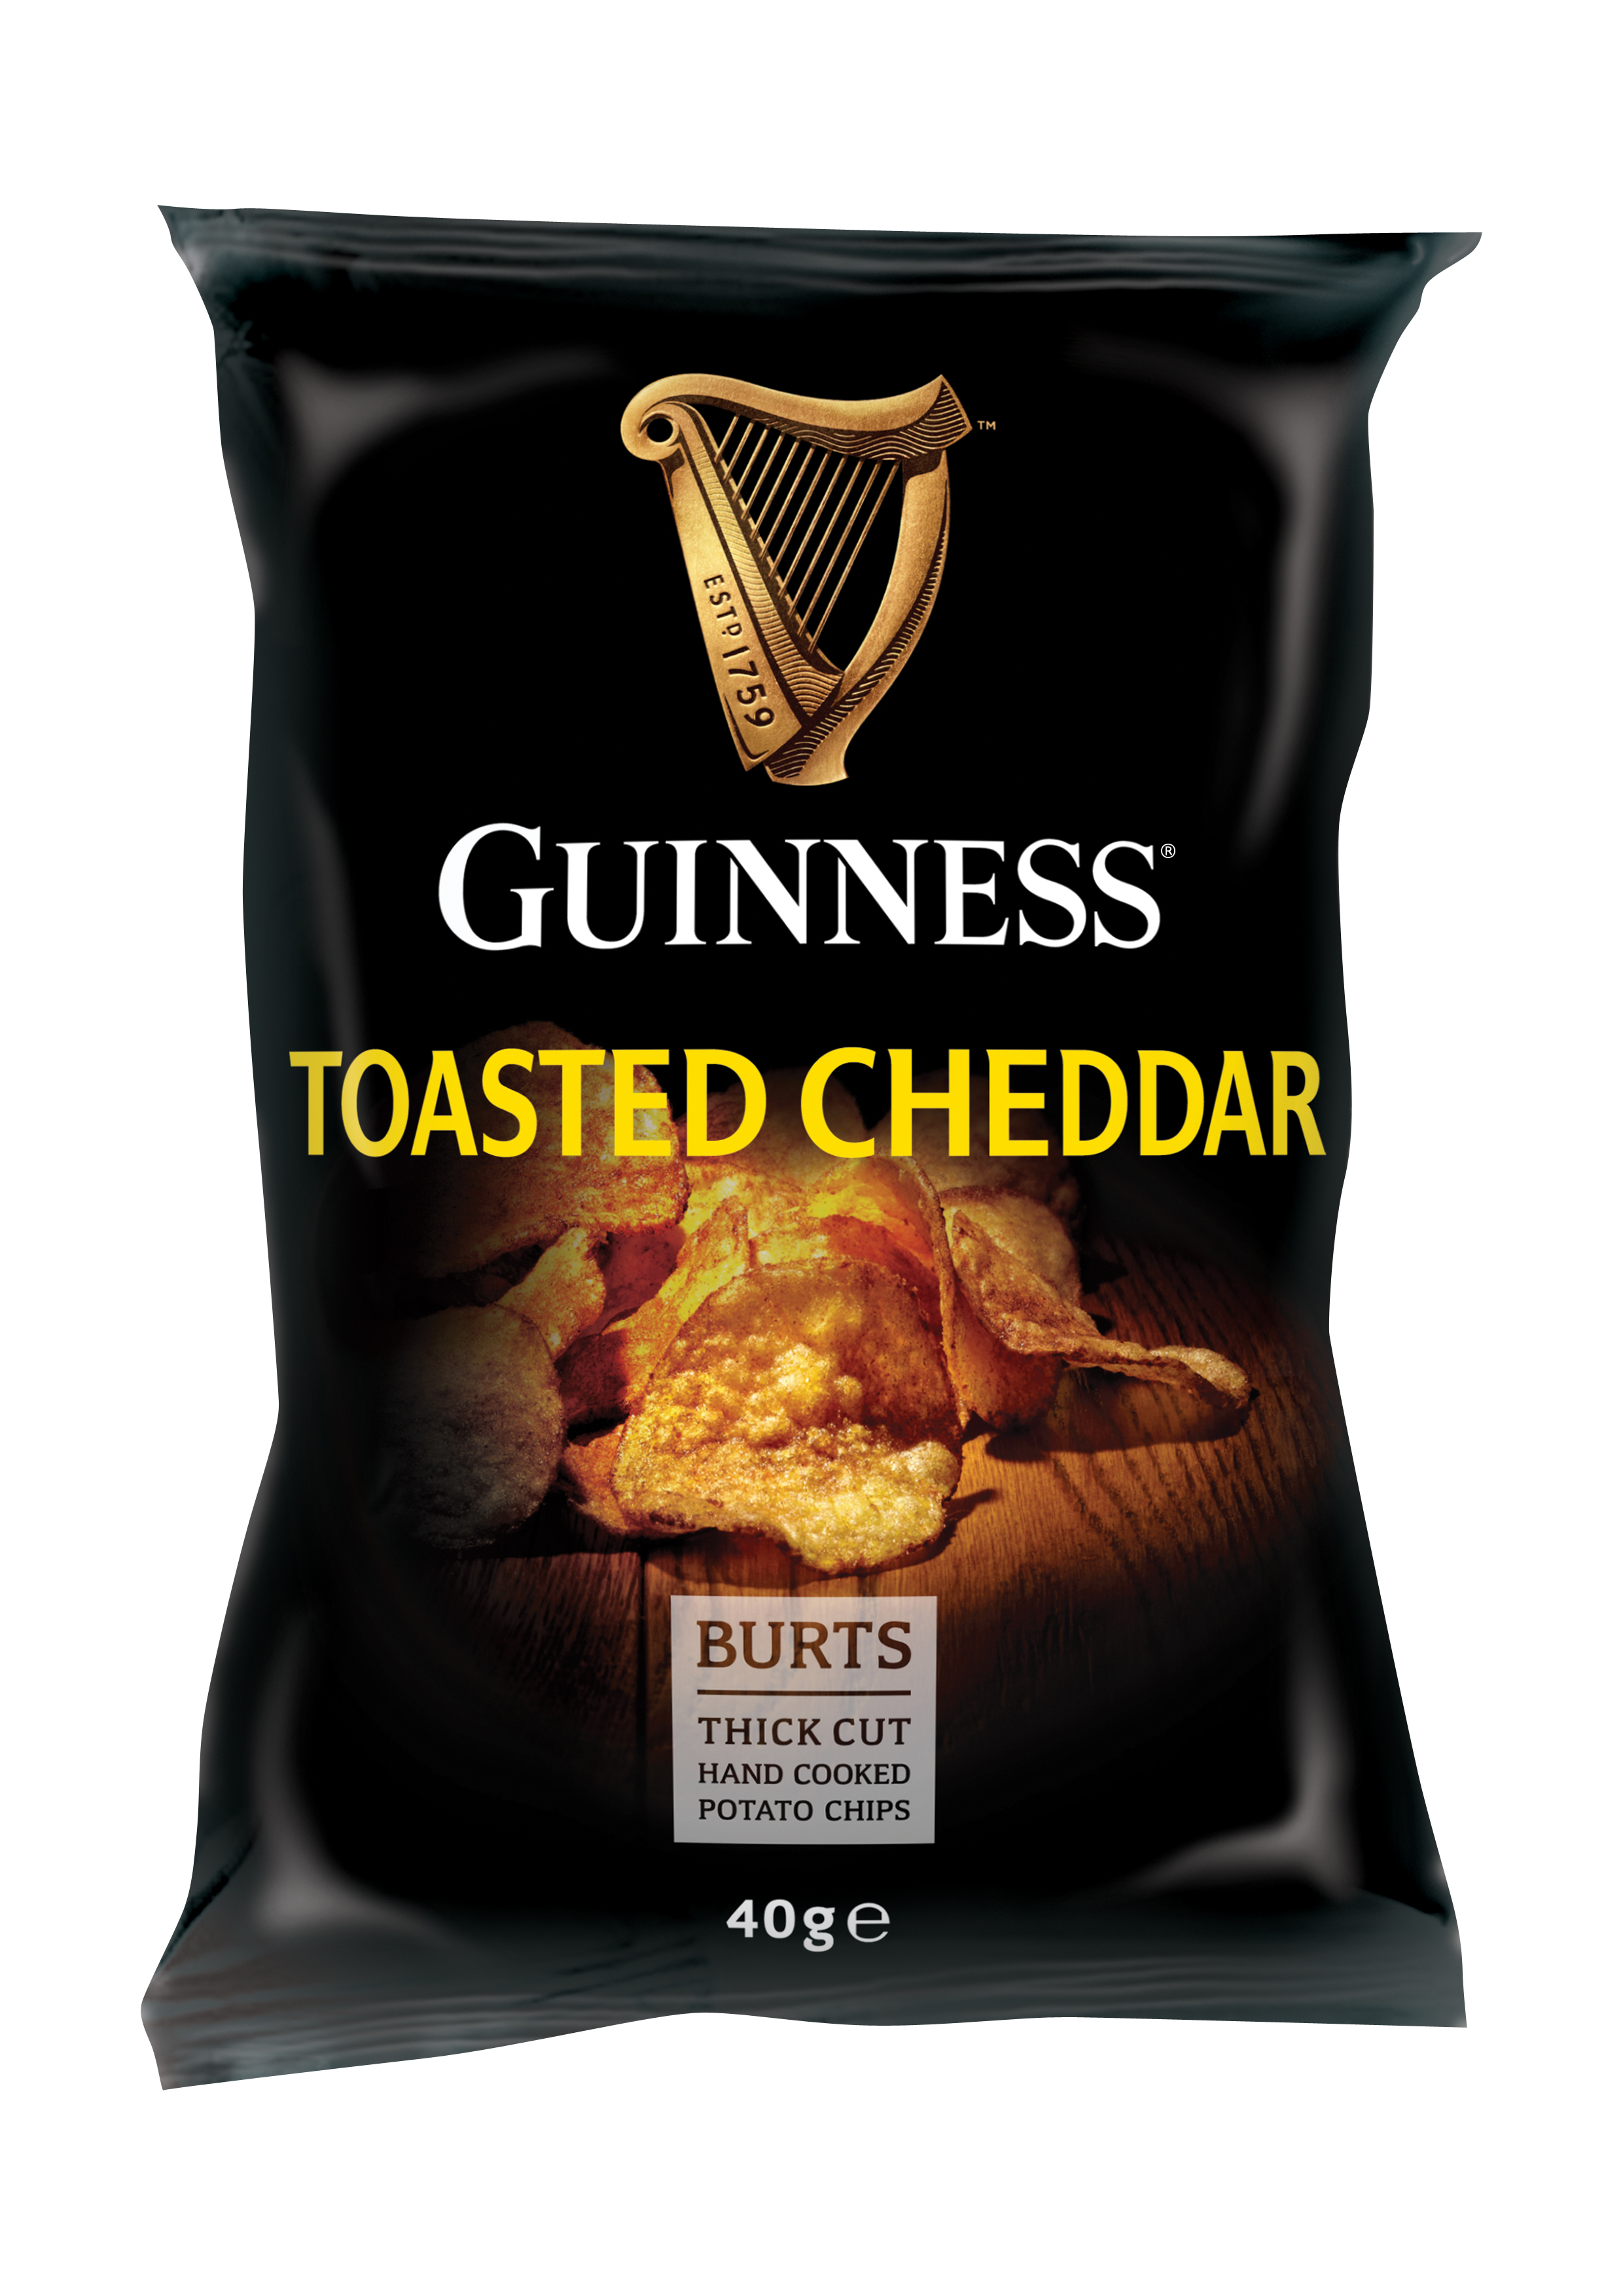 Burts Guinness Toasted Cheddar Potato Chips